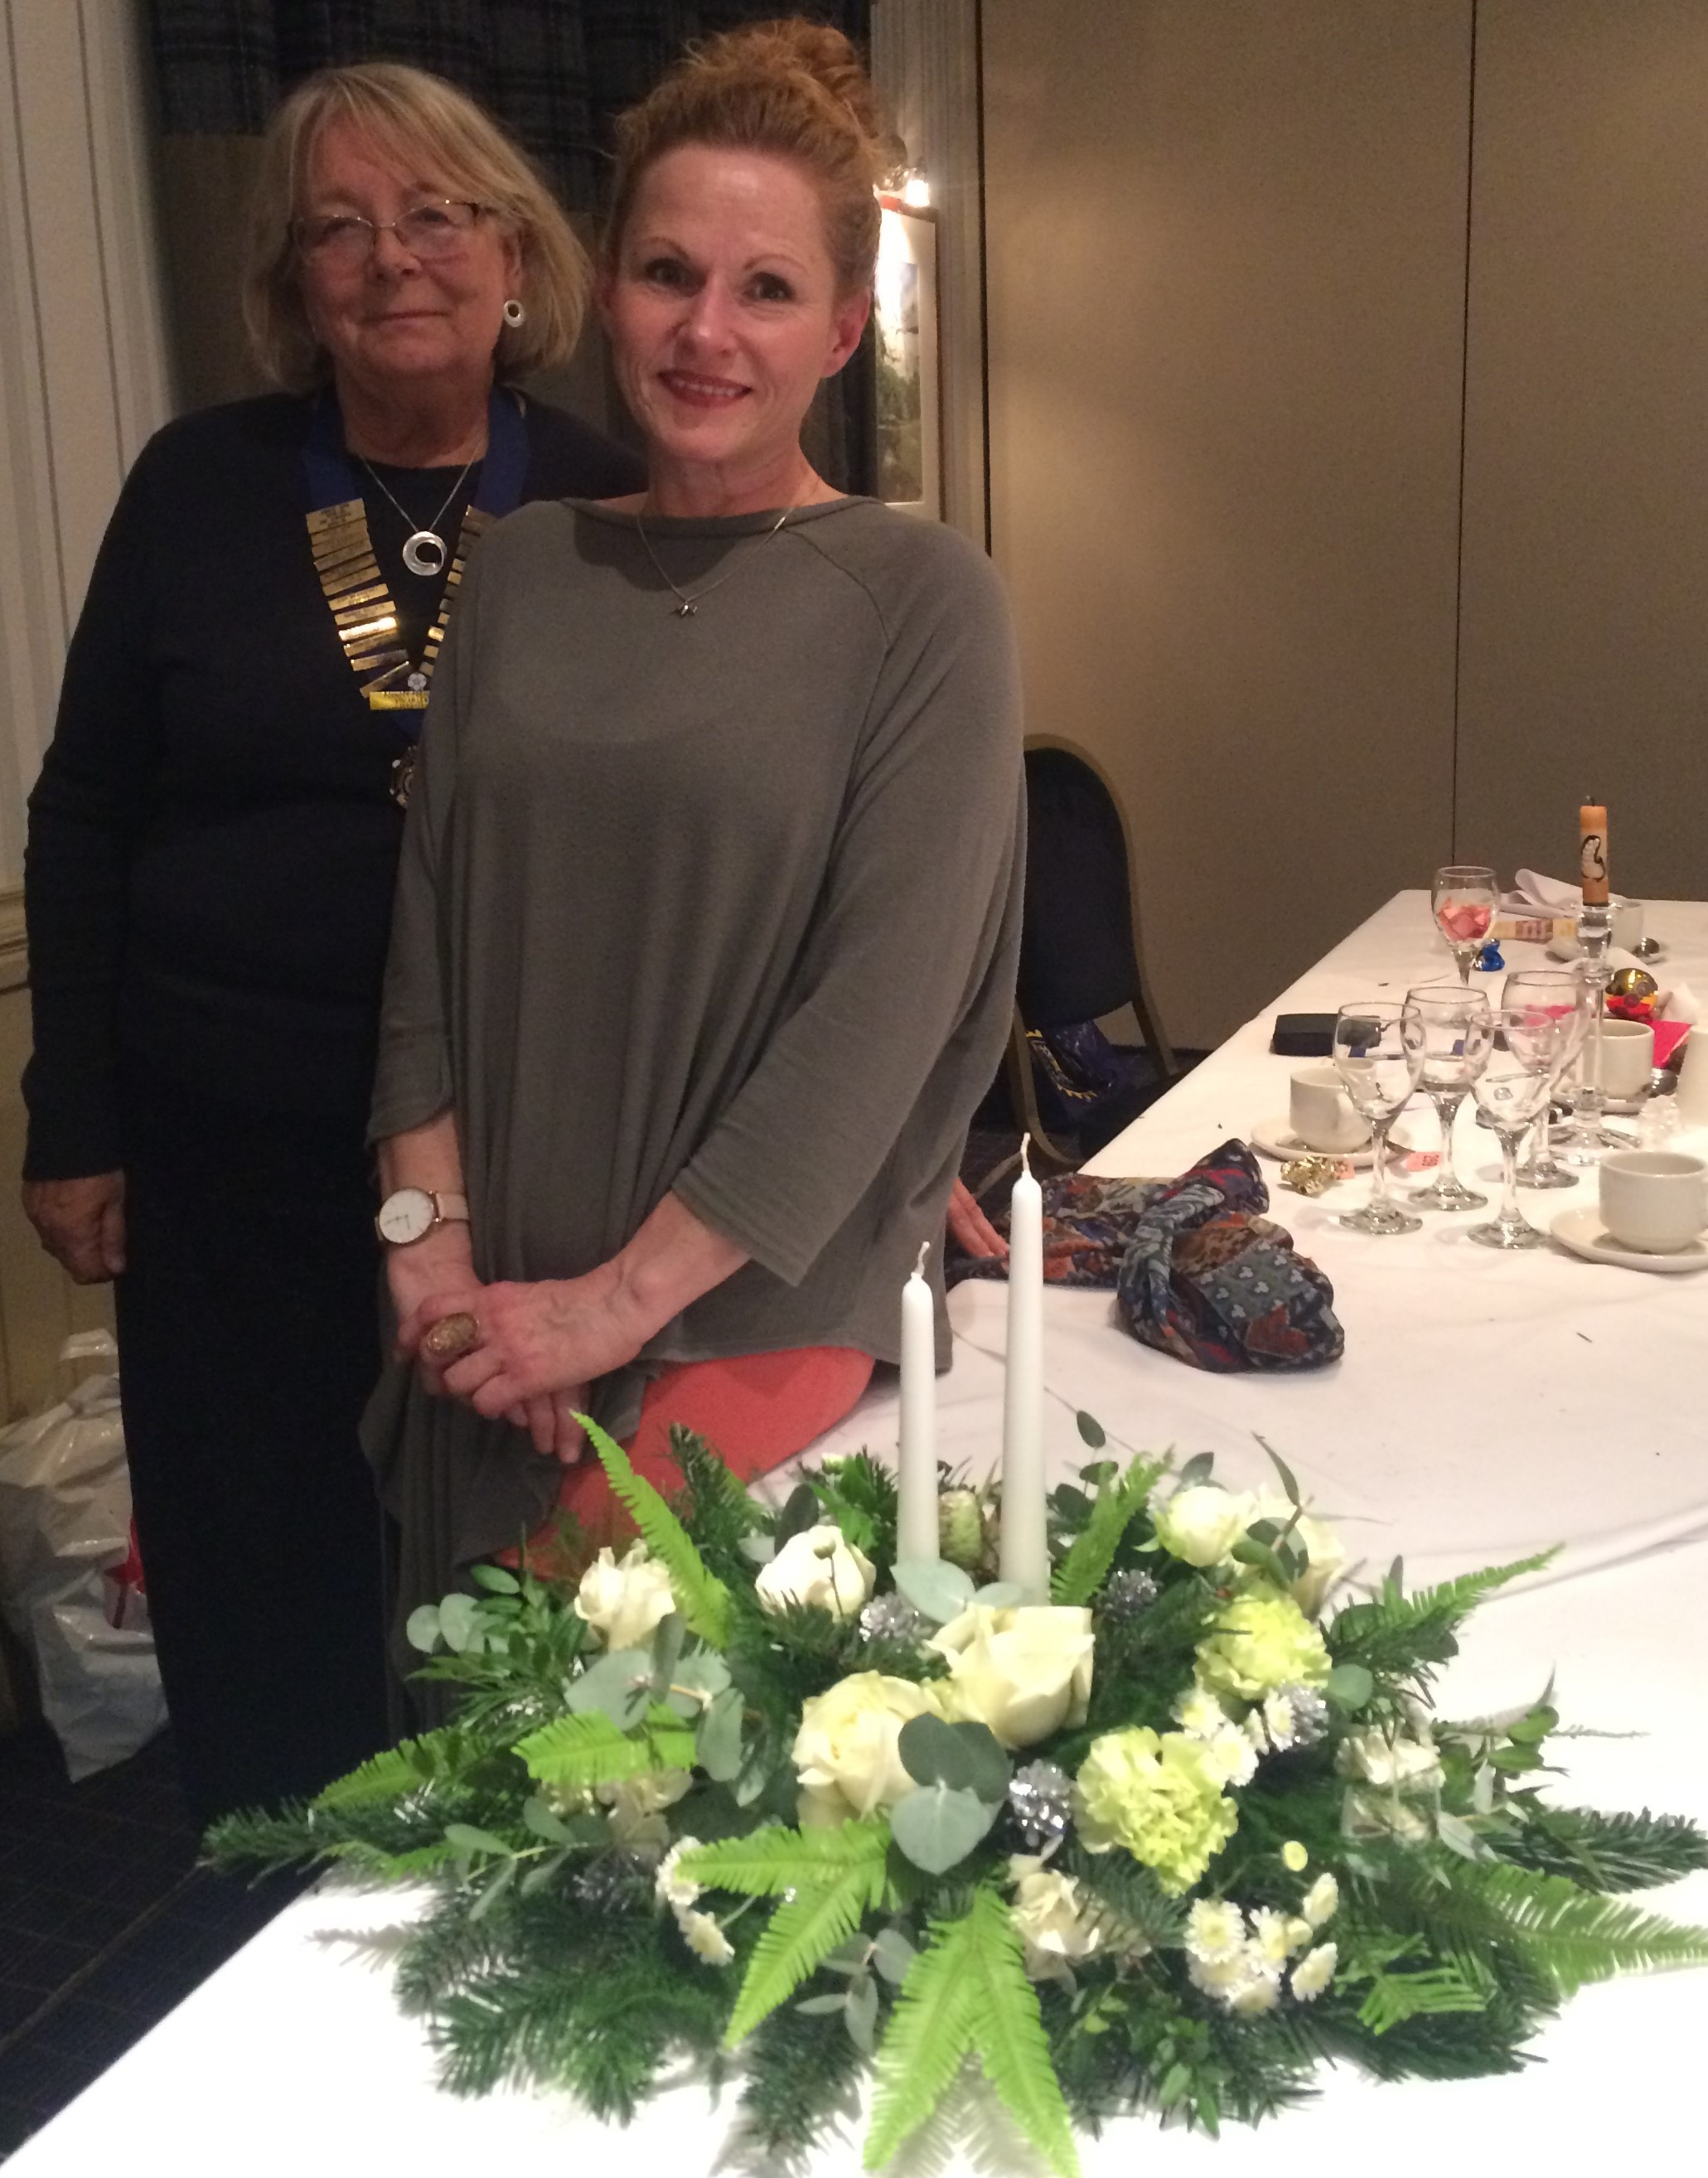 President of Otley Chevin Inner Wheel, Jennifer Angus, with Claire Glover from Casa Vitae and her Christmas table flower arrangement